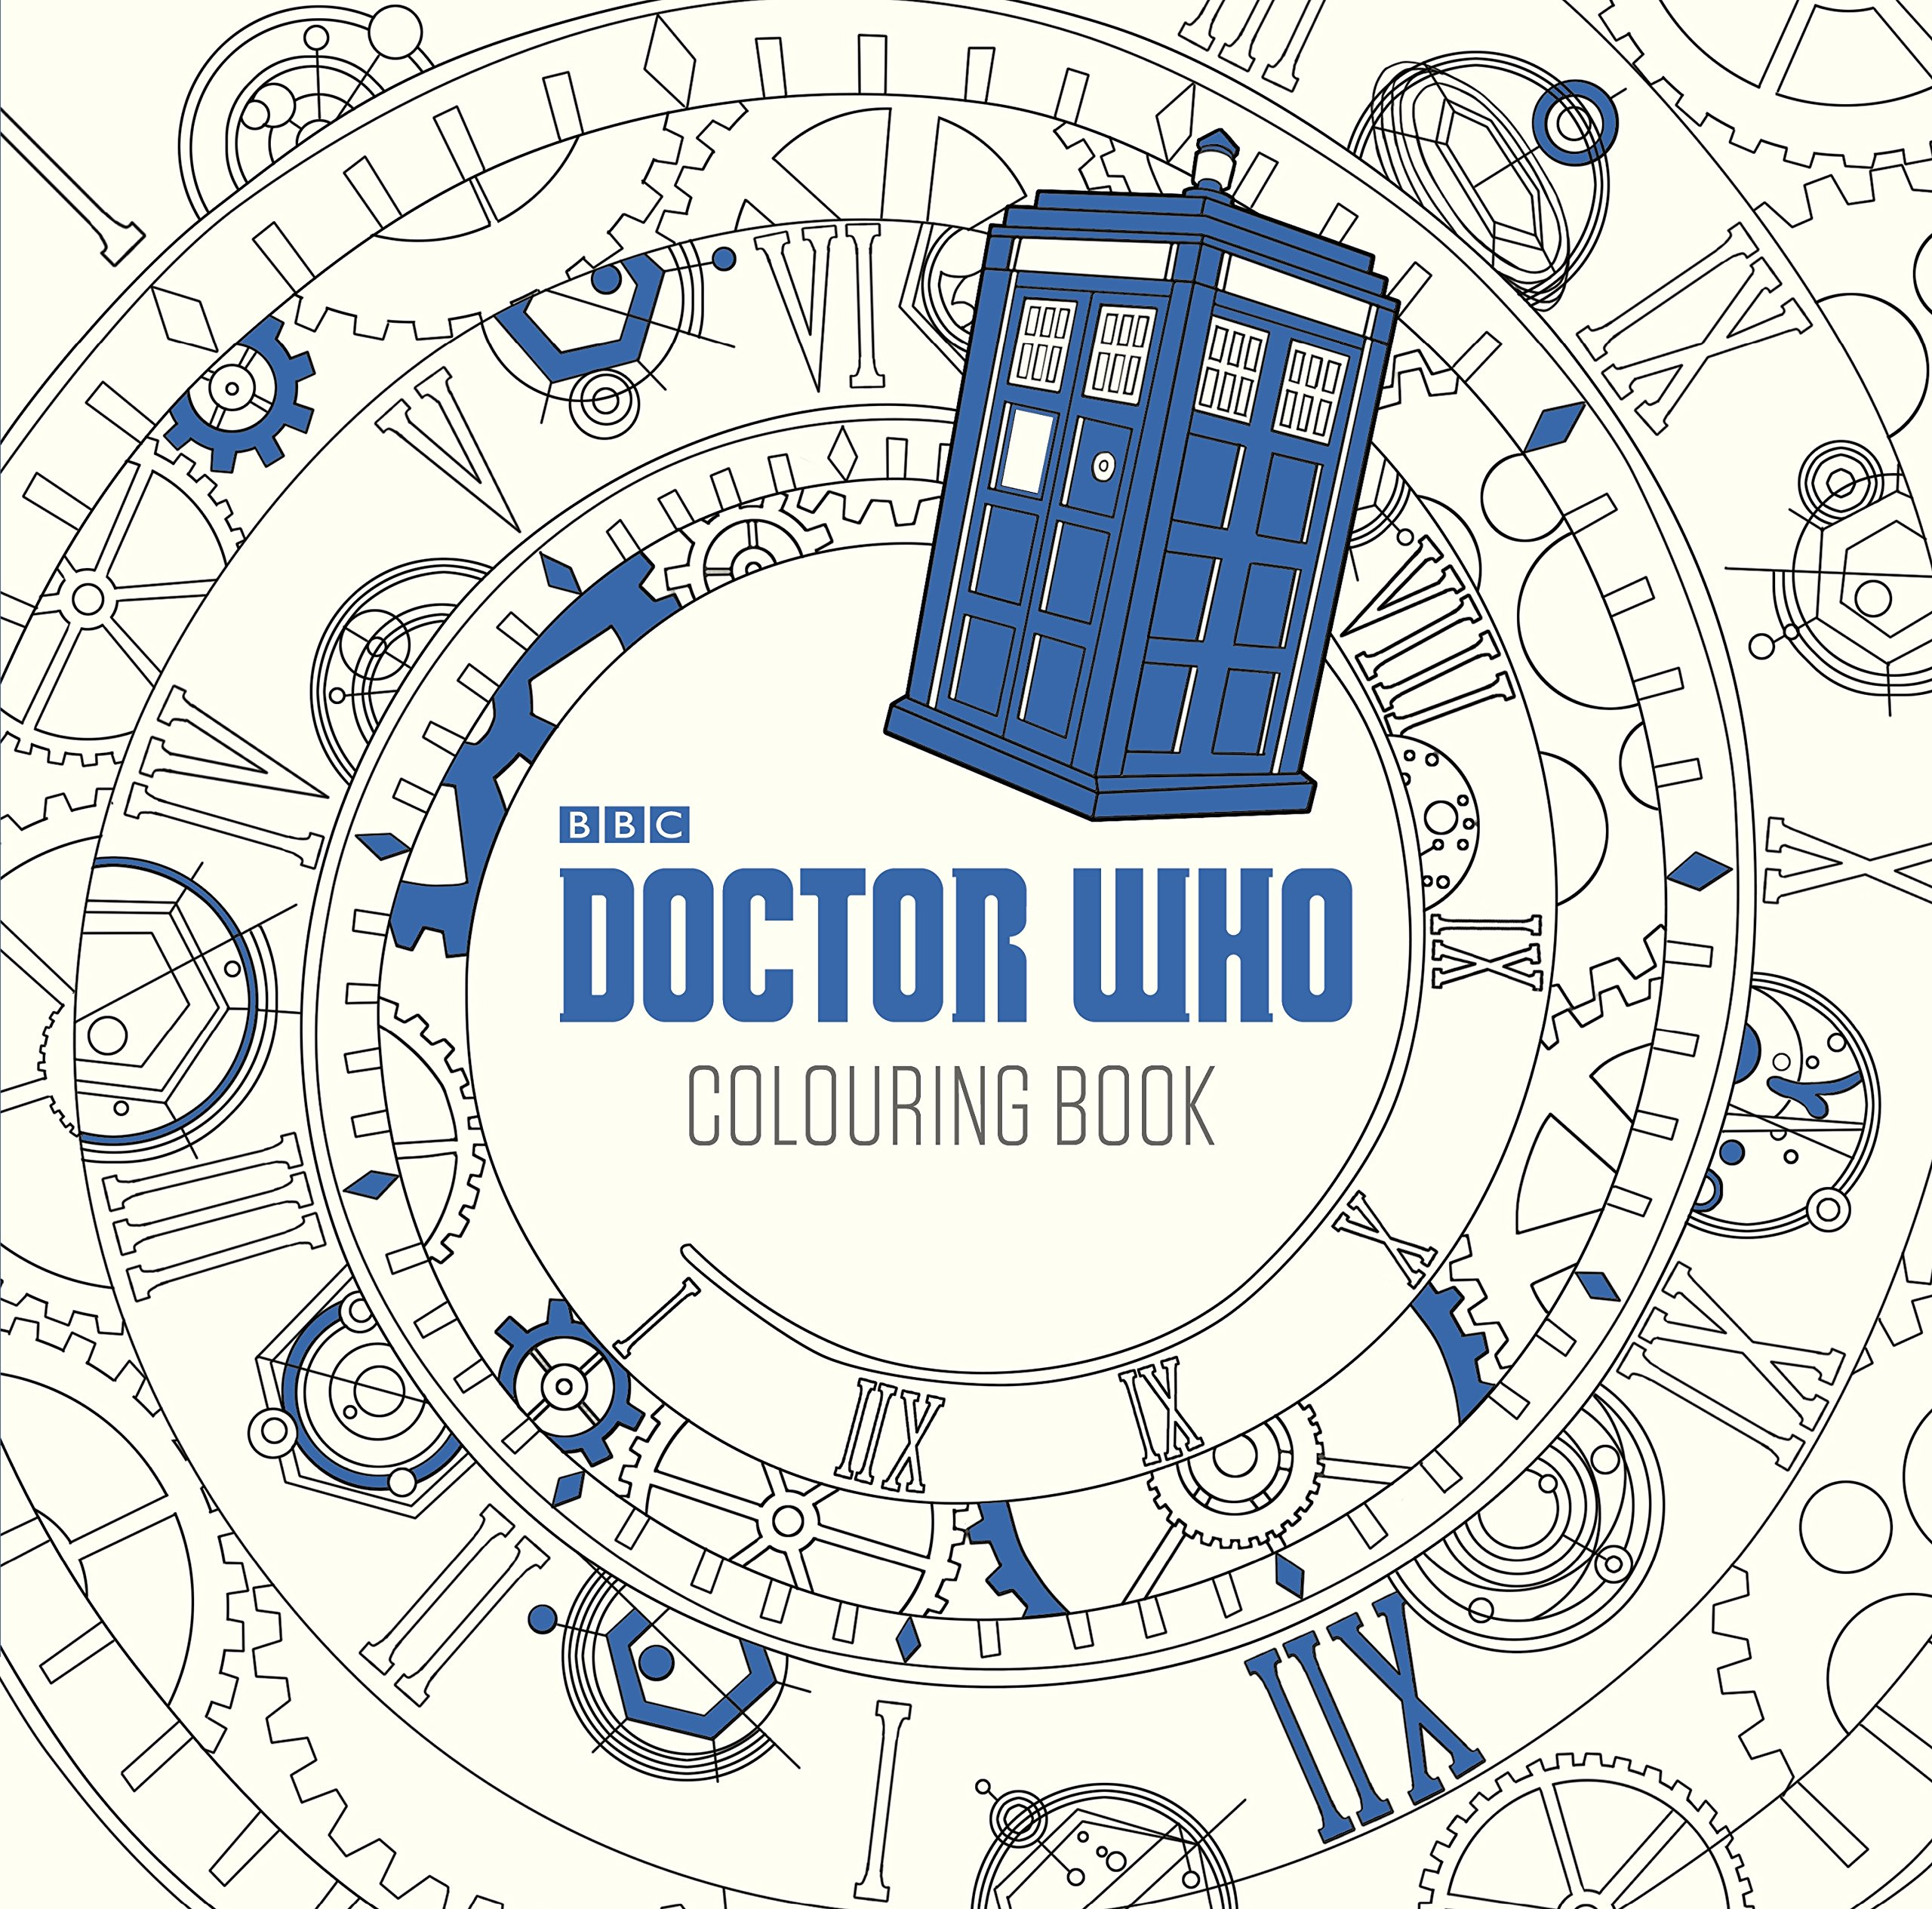 httpsimages nassl images amazoncomimagesia - Doctor Who Coloring Book